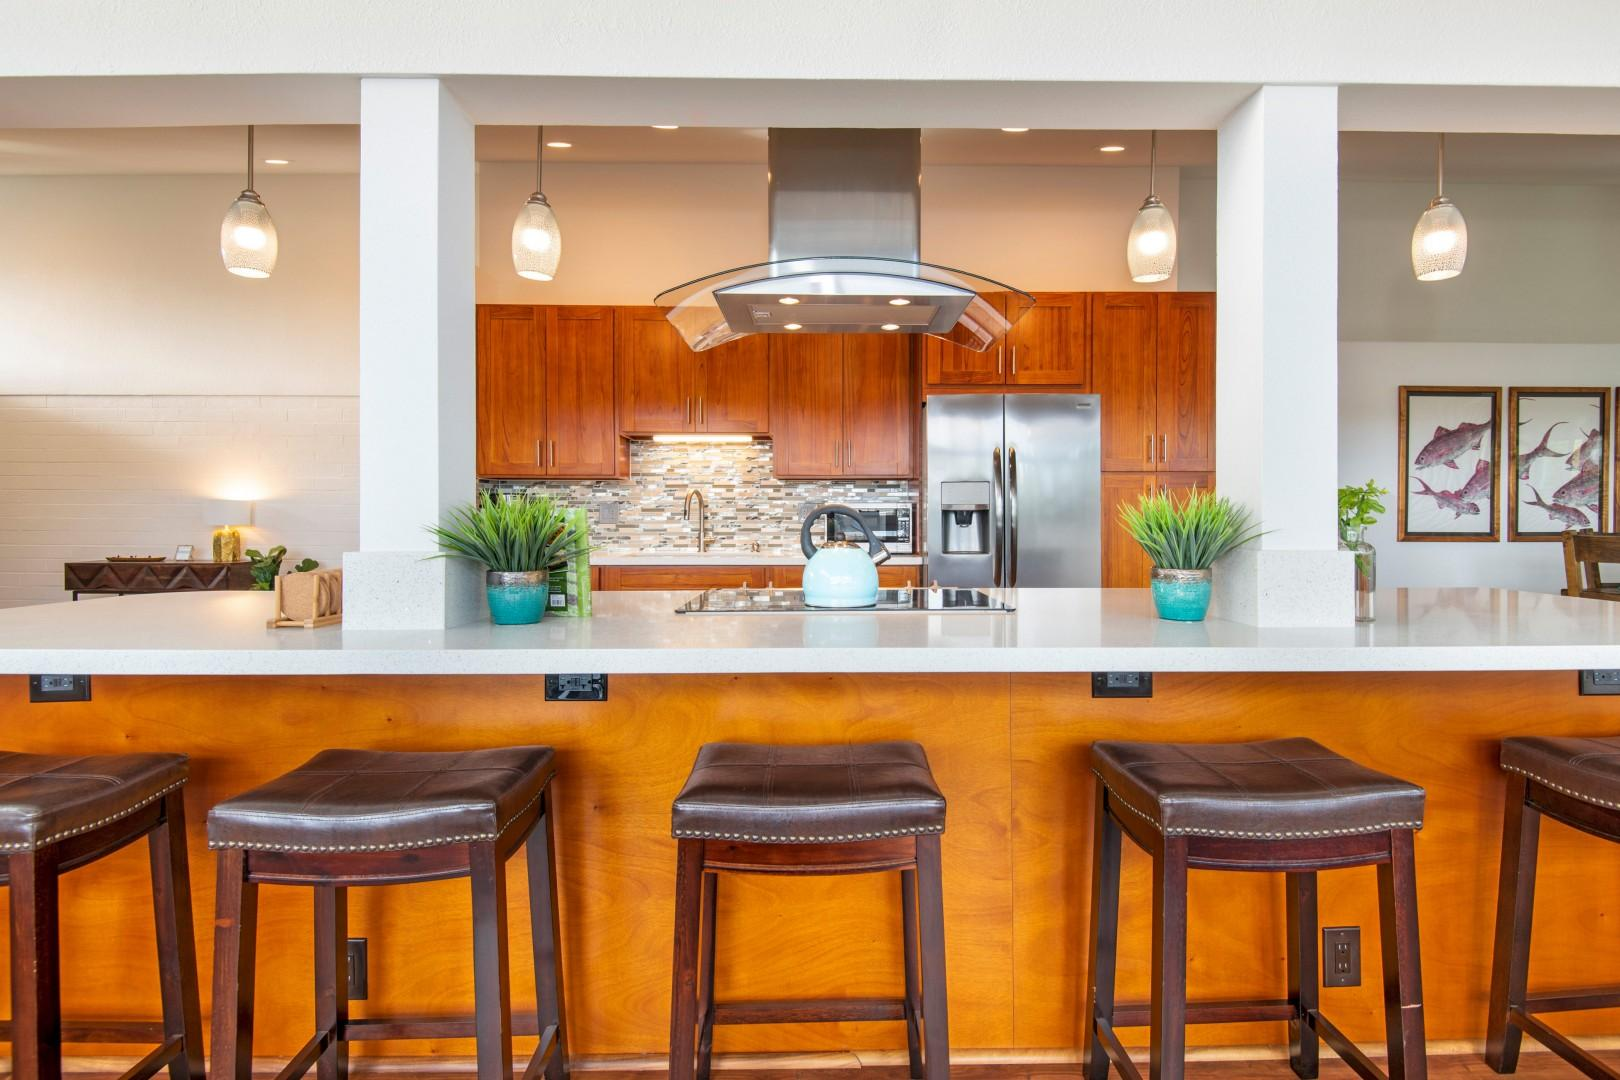 Cook up a delicious meal in the kitchen with a breakfast nook, perfect for feasting before you tour around the island.